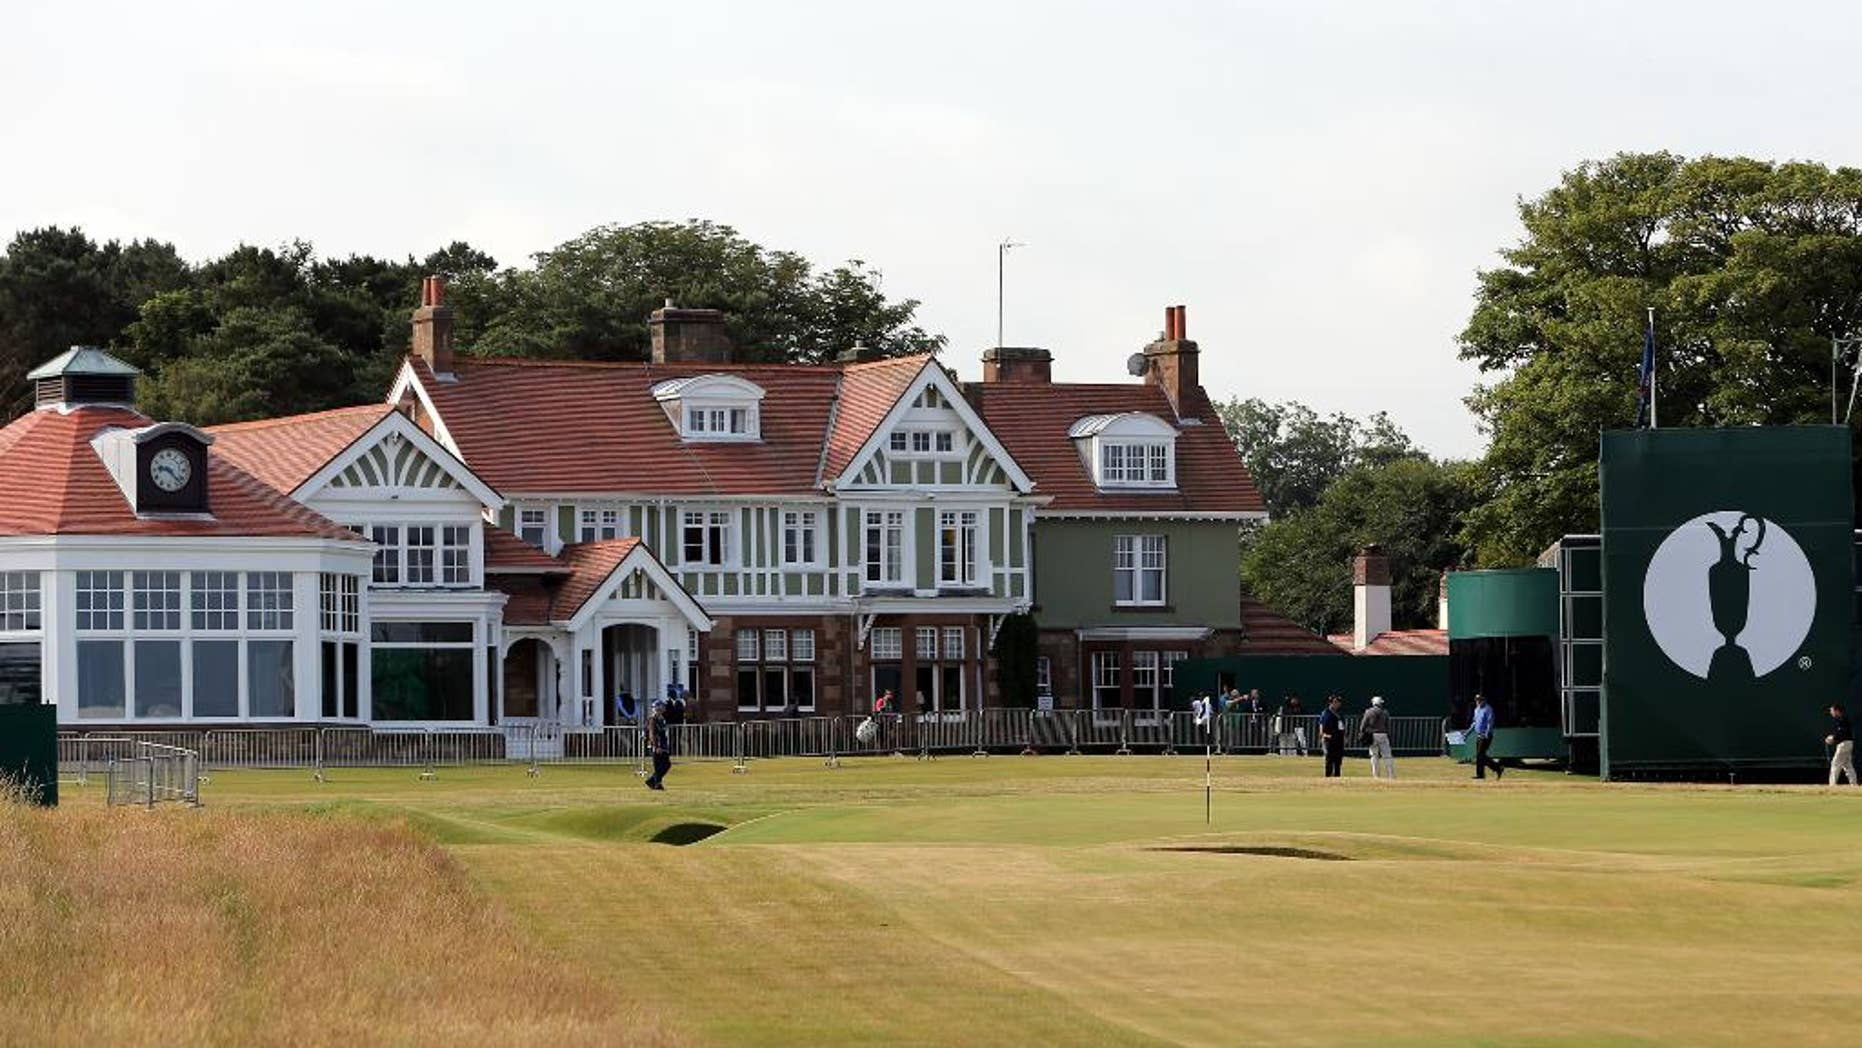 FILE - This is a Sunday, July 14, 2013 file photo of the clubhouse at Muirfield golf course in Muirfield. Muirfield, one of the golf clubs that hosts the British Open, has voted against allowing women to become members. The decision was announced Thursday May 19, 2016 after a vote of Muirfield's 750 members following a two-year consultation process at the Scottish club. (AP Photo/Scott Heppell, File)